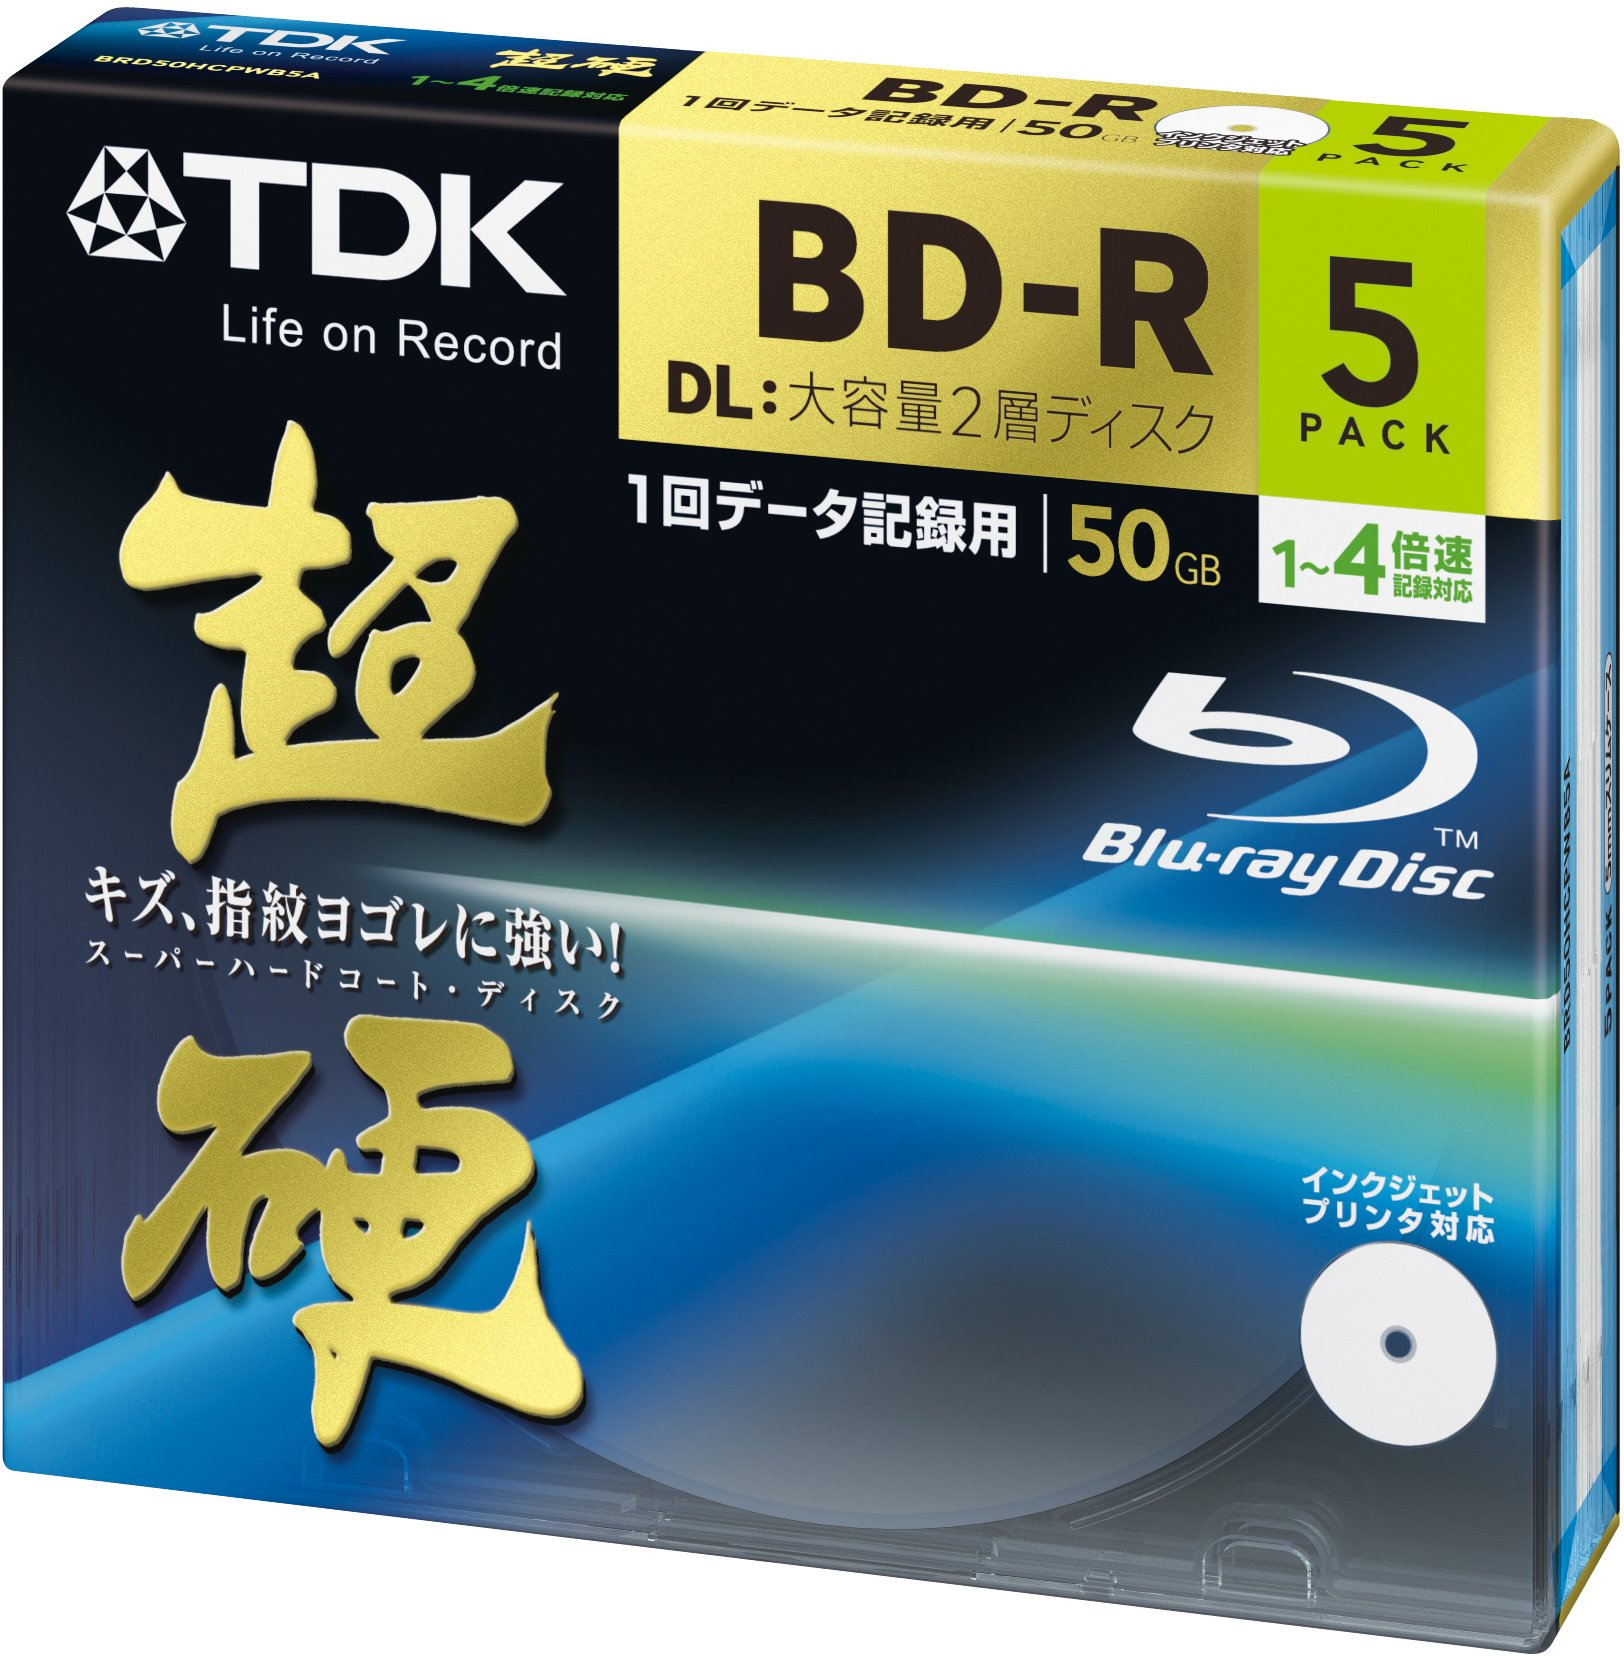 TDK Blu-ray BD-R Disk for PC Data | Super Hard Coating Surface | 50GB (DL) 4x Speed 5 Pack (Japanese Import) by TDK Media (Image #1)